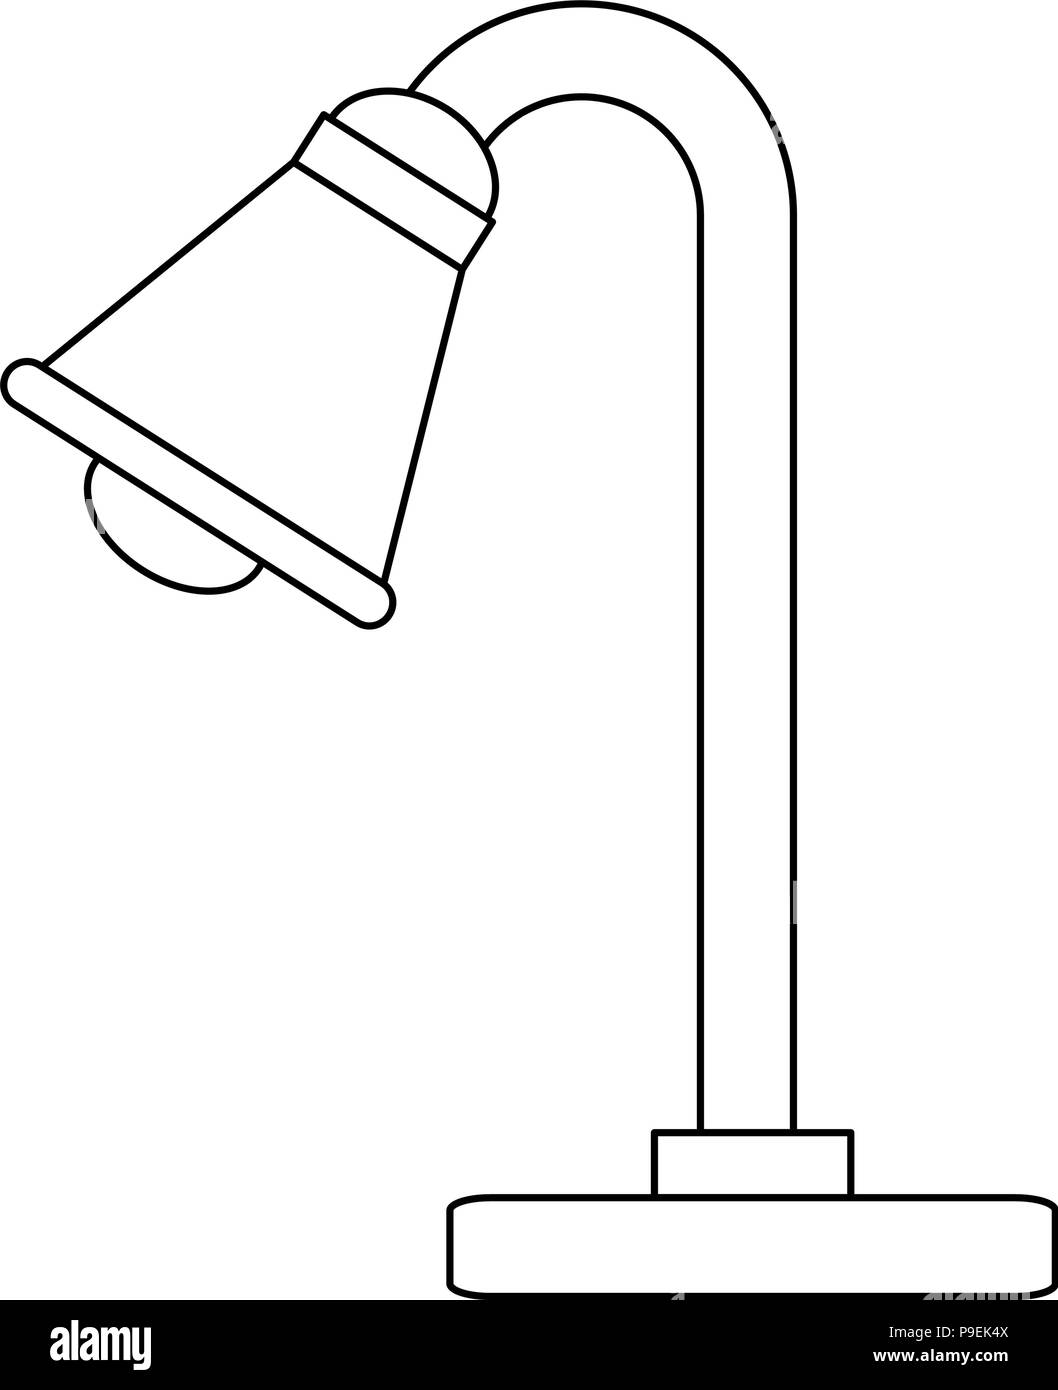 desk lamp isolated icon - Stock Image